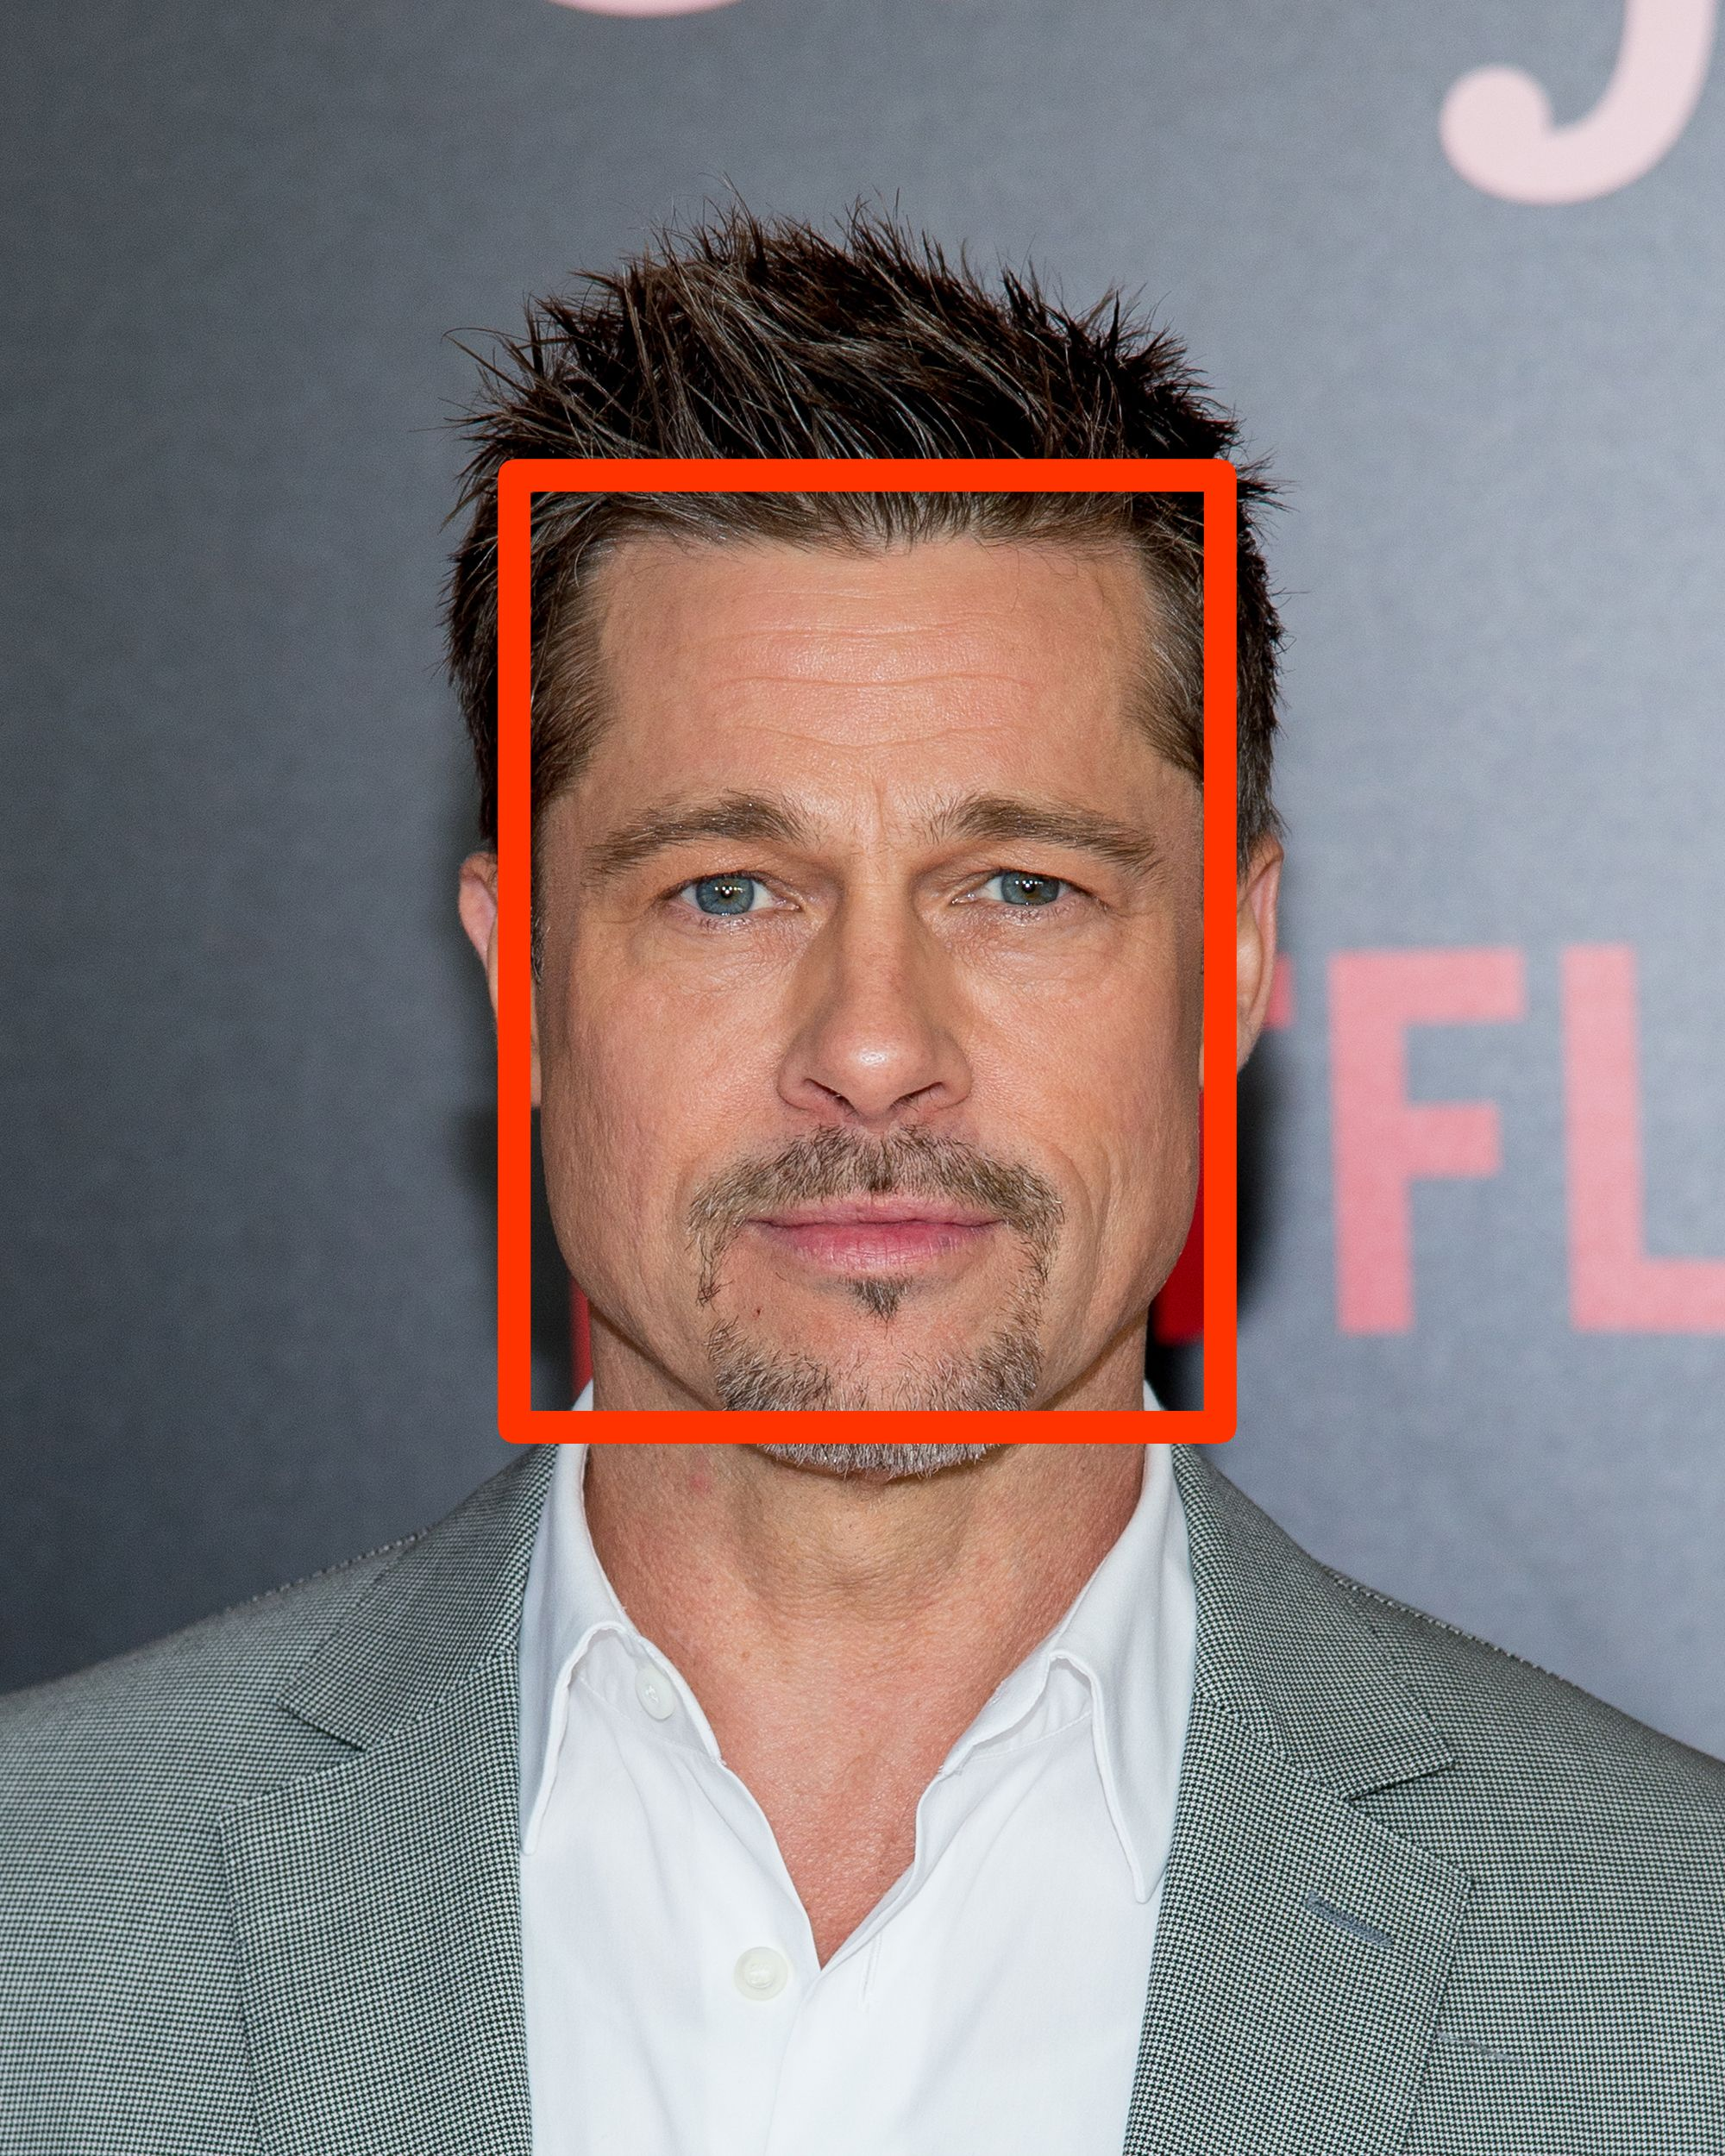 brad pitt, brad pitt square face, square face shape man, square face man